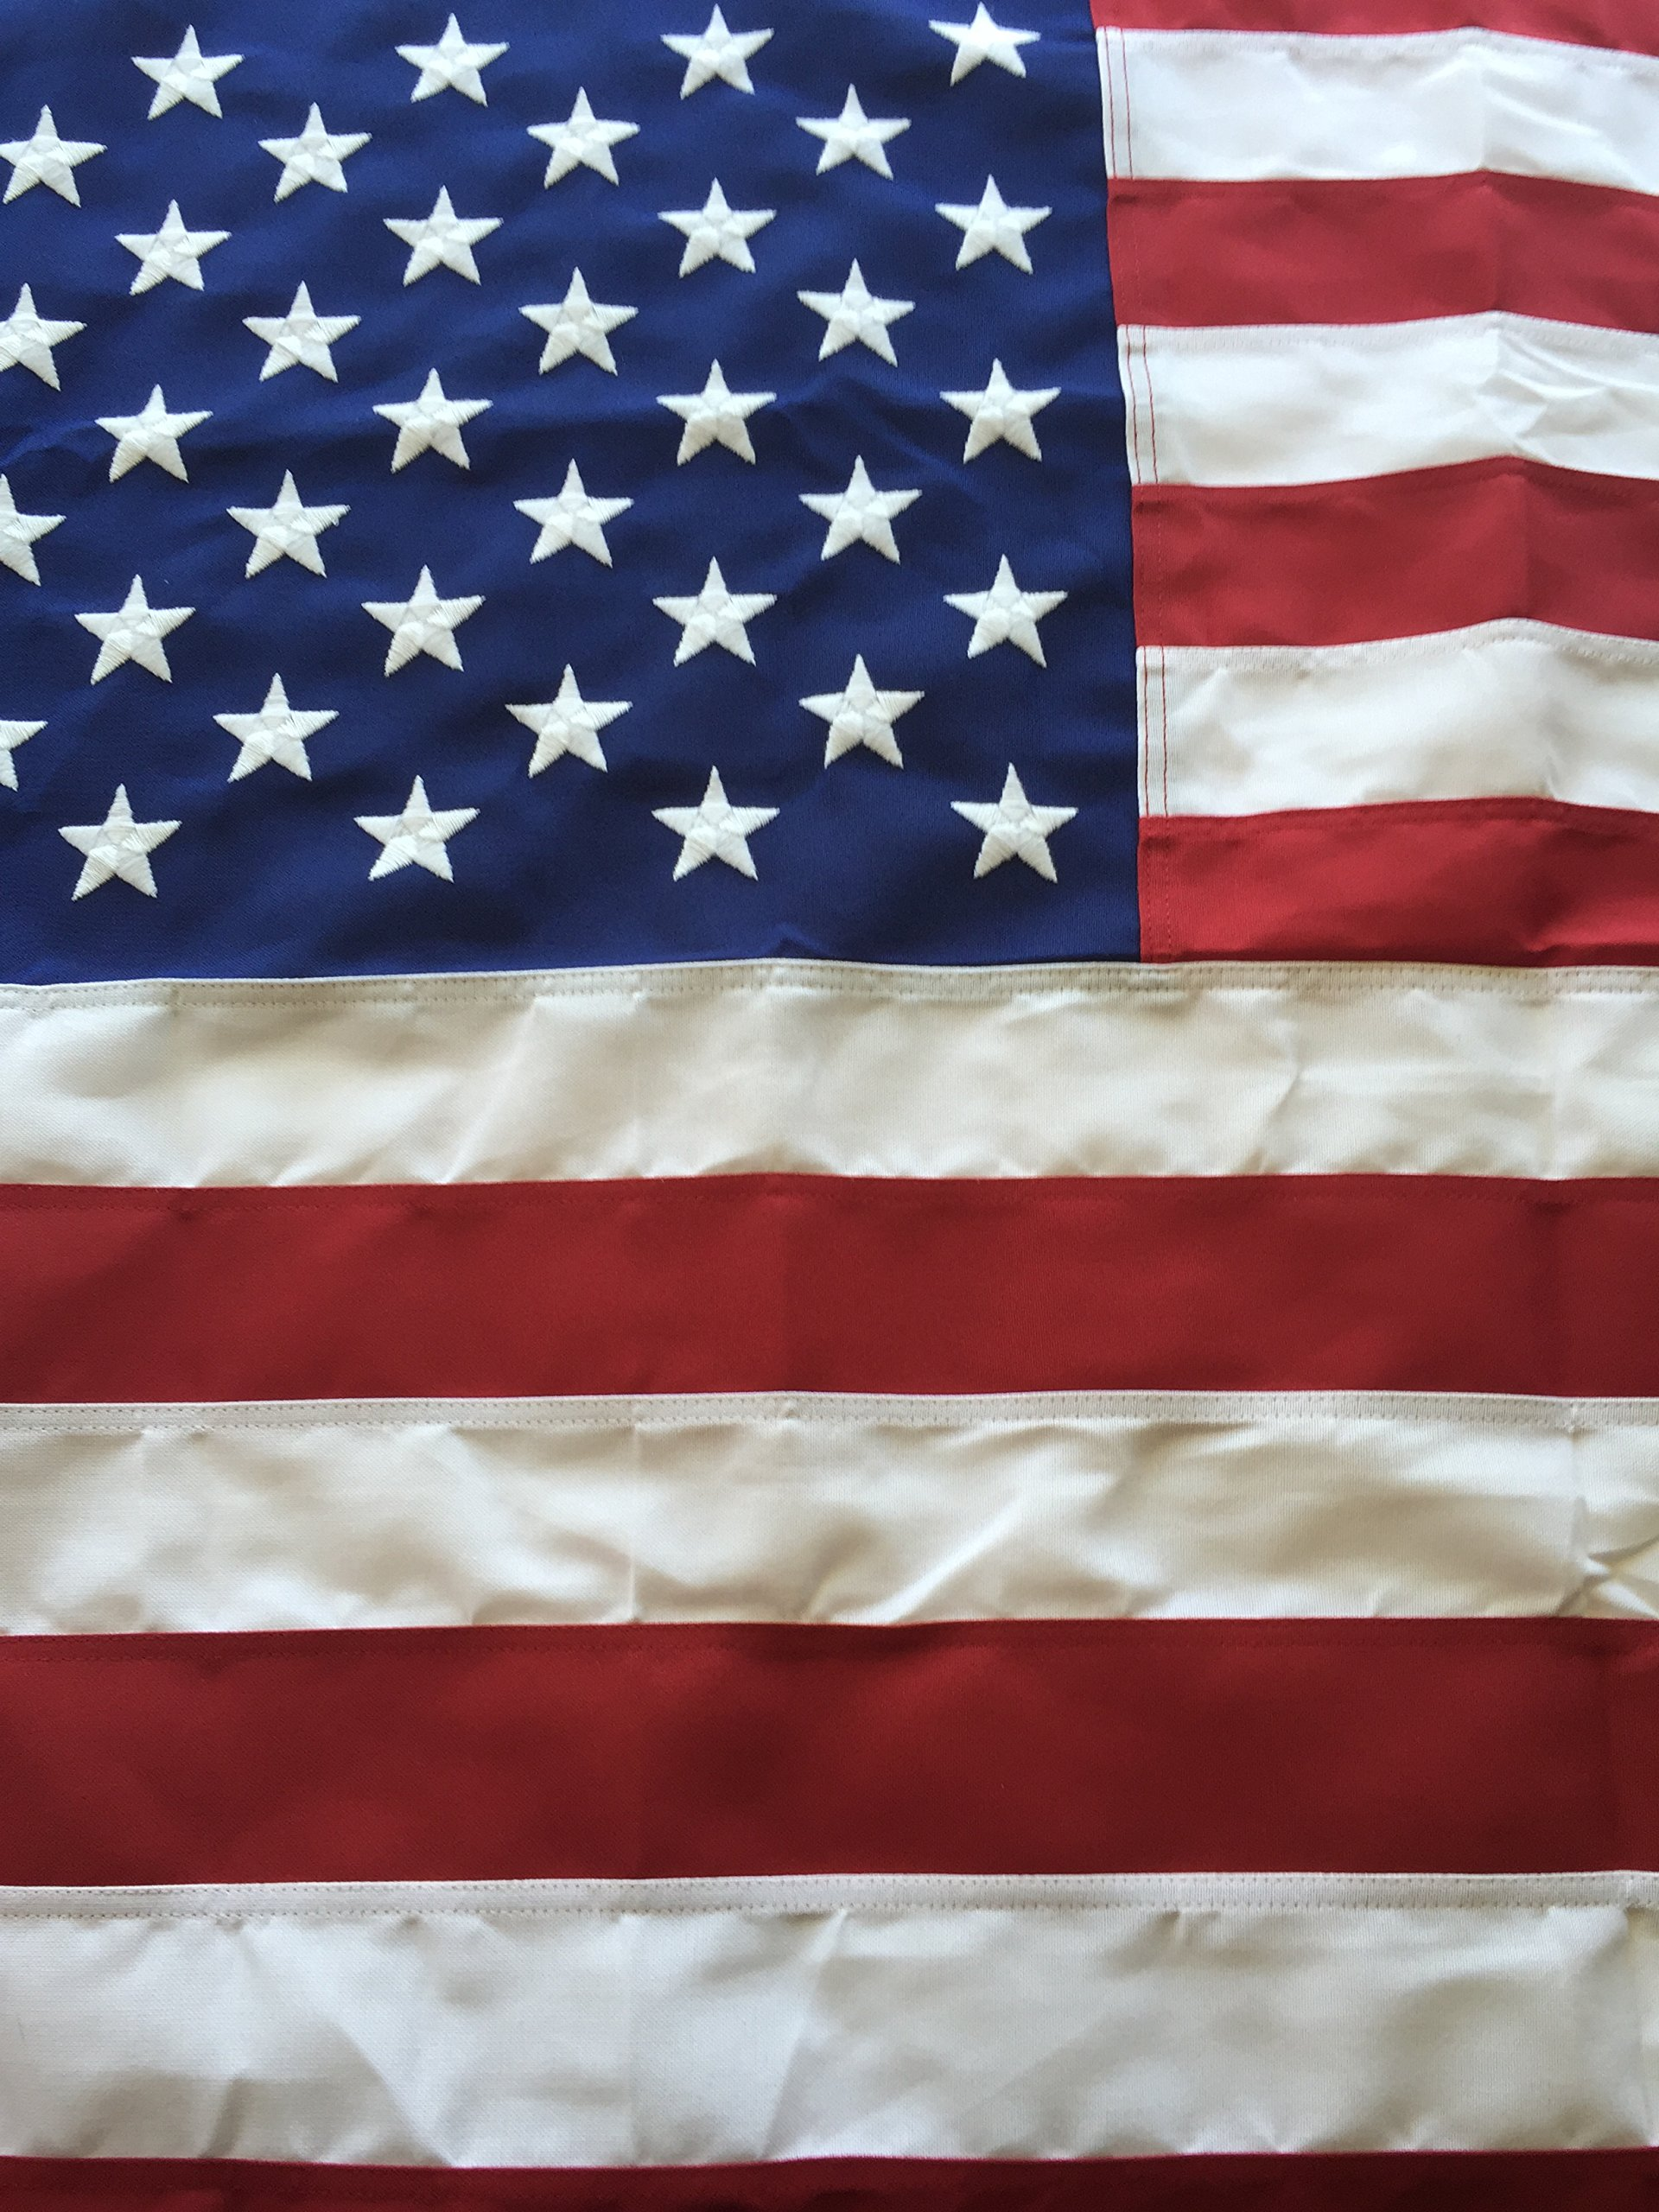 10x15 Best Commercial Grade Polyester American Flag 10'x15' US Flag Made in the USA Embroidered Stars Sewn Stripes by Flags Poles And More by Flags Poles And More